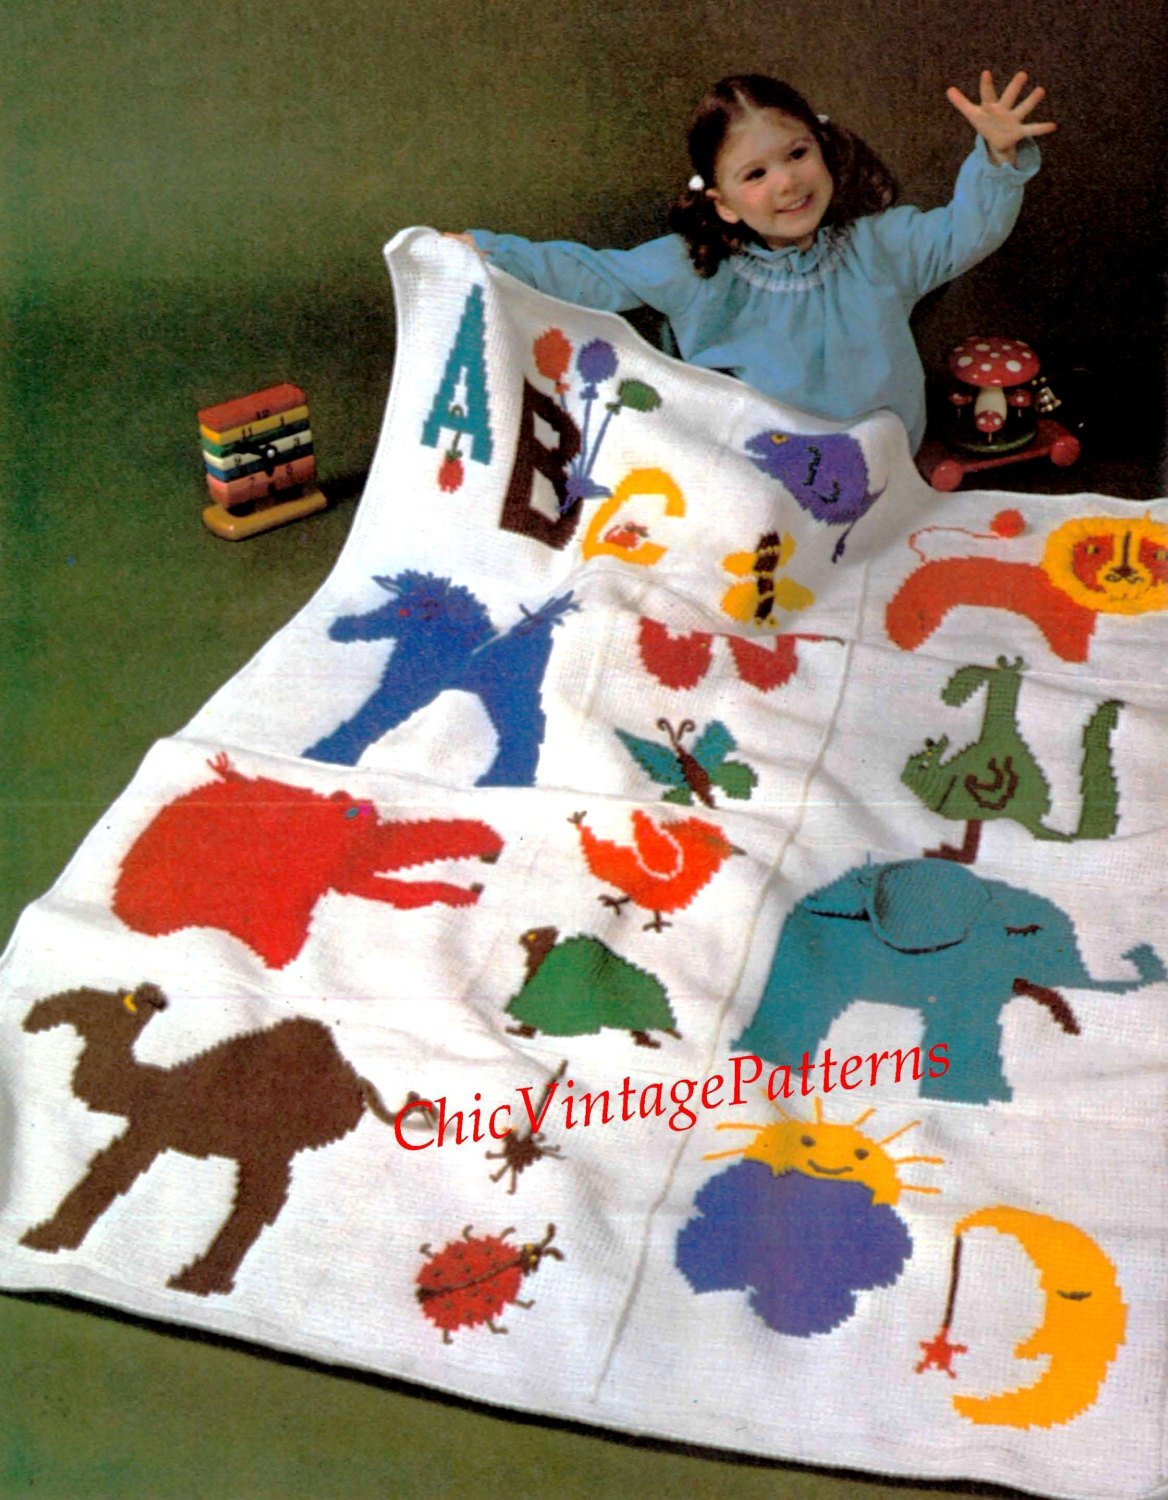 Crochet Pattern, Children's Zoo Afghan, Cot Rug, Instant Download